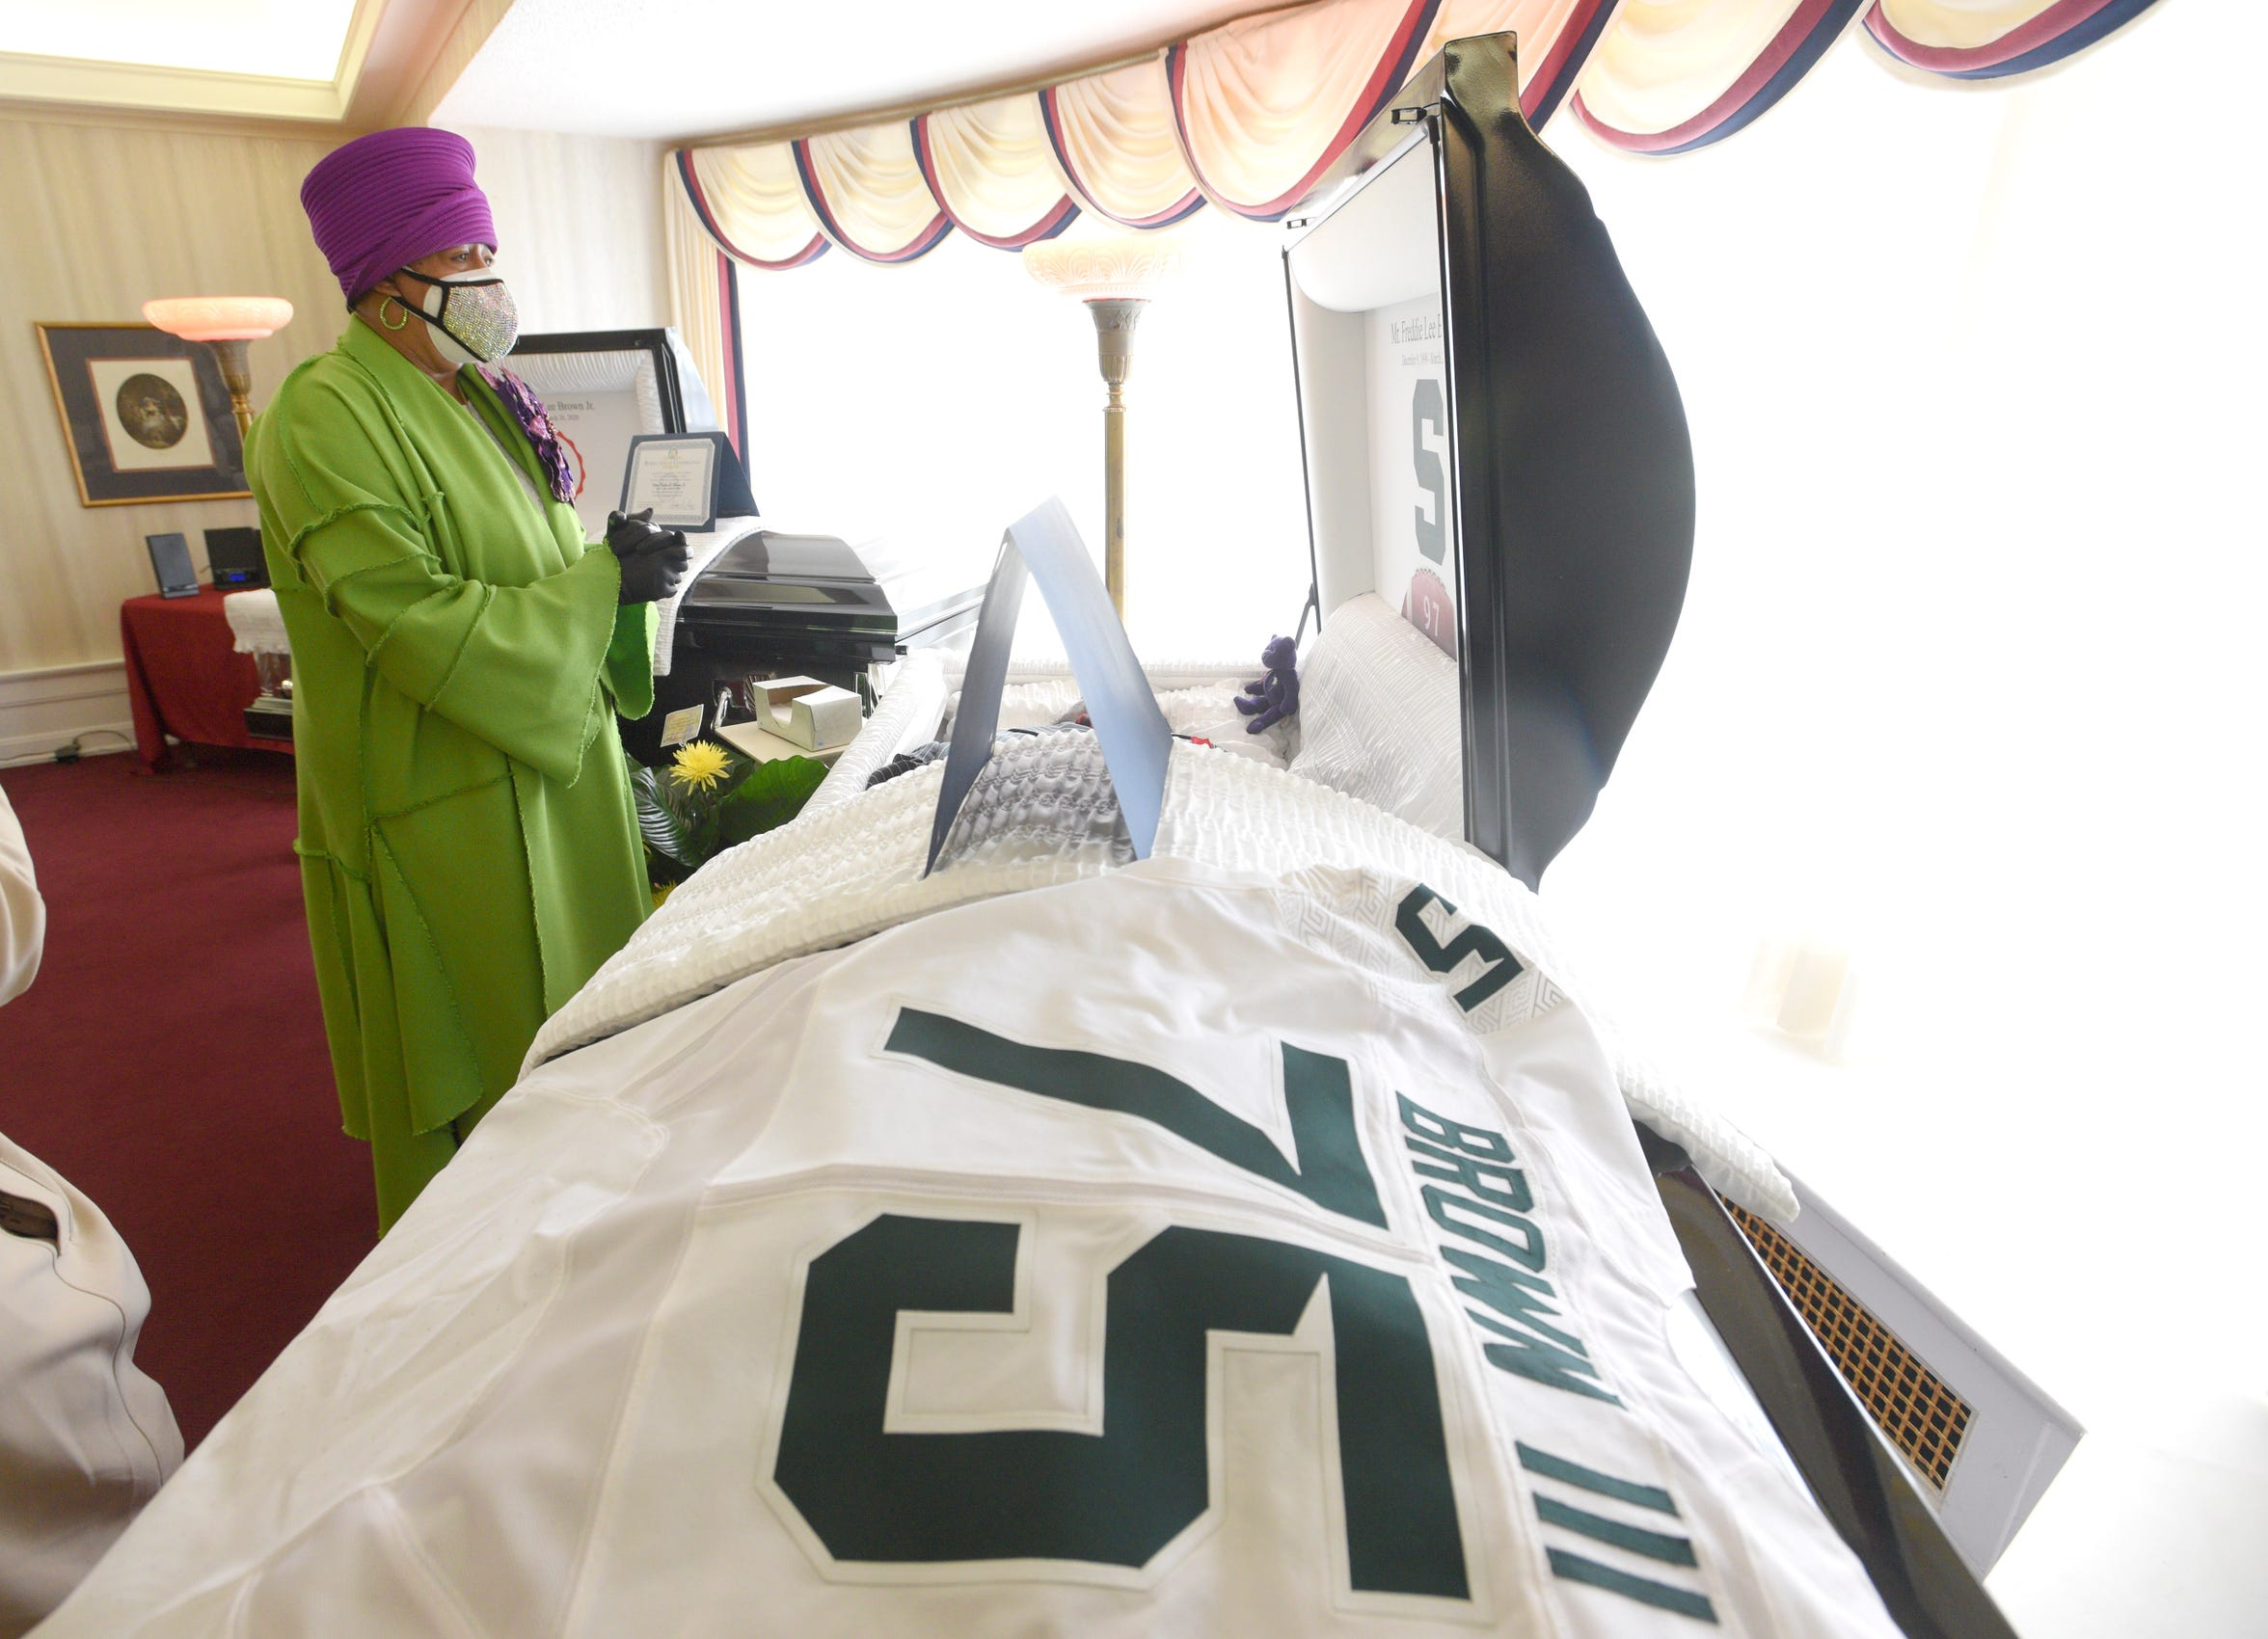 Sandy Brown cries as she pays respects to her son, Freddie Lee Brown III, who dreamed of playing football at Michigan State this fall as a walk-on.